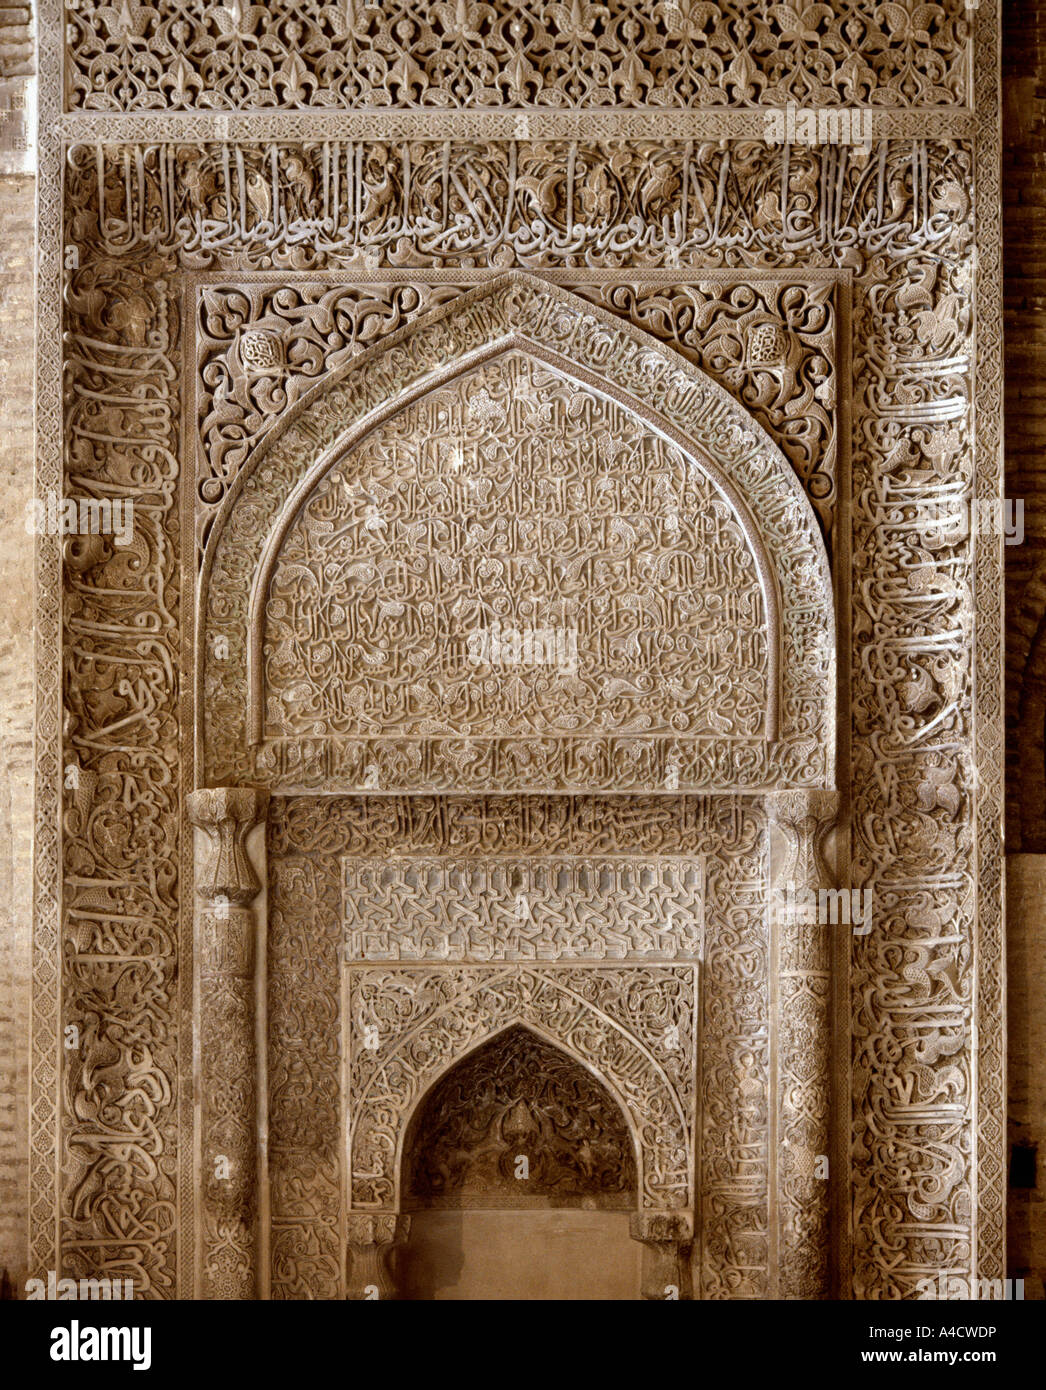 mihrab of Oljeitu, Friday Mosque of Isfahan, Iran Stock Photo